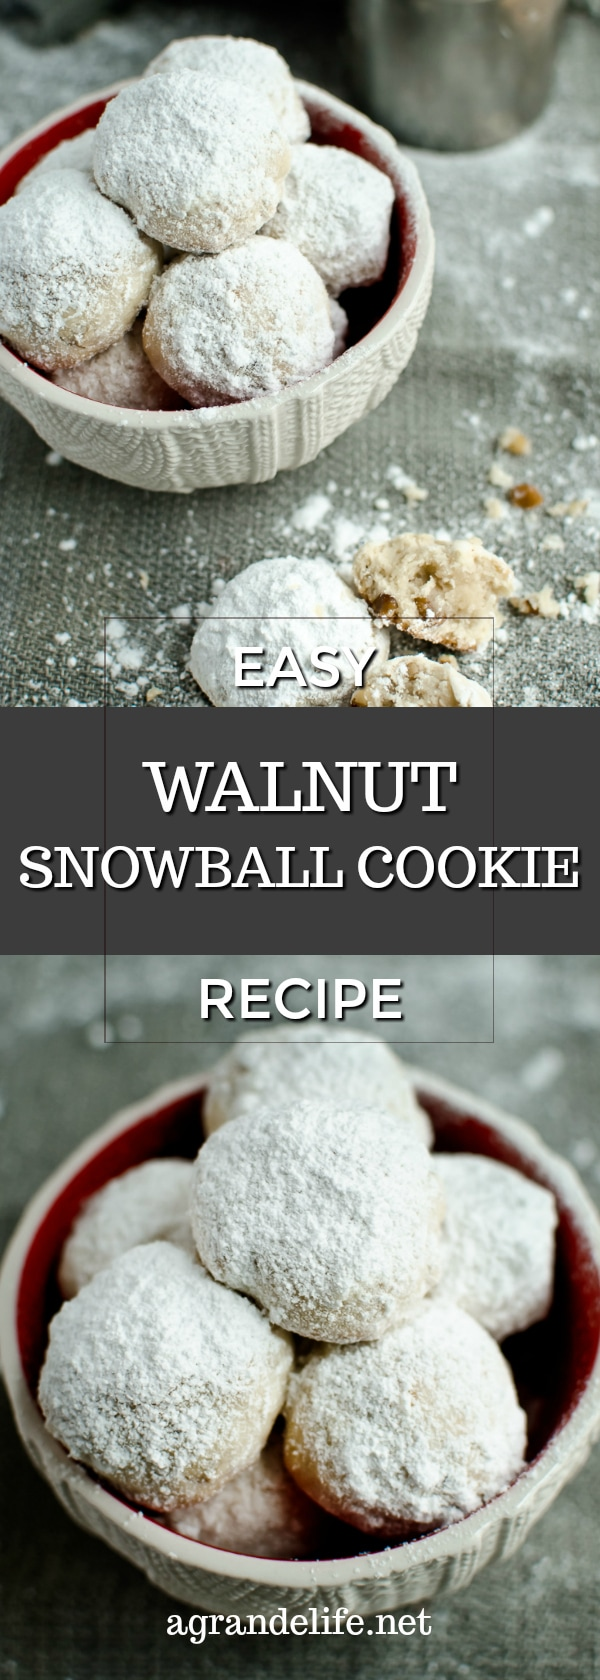 easy walnut snowball cookies recipe